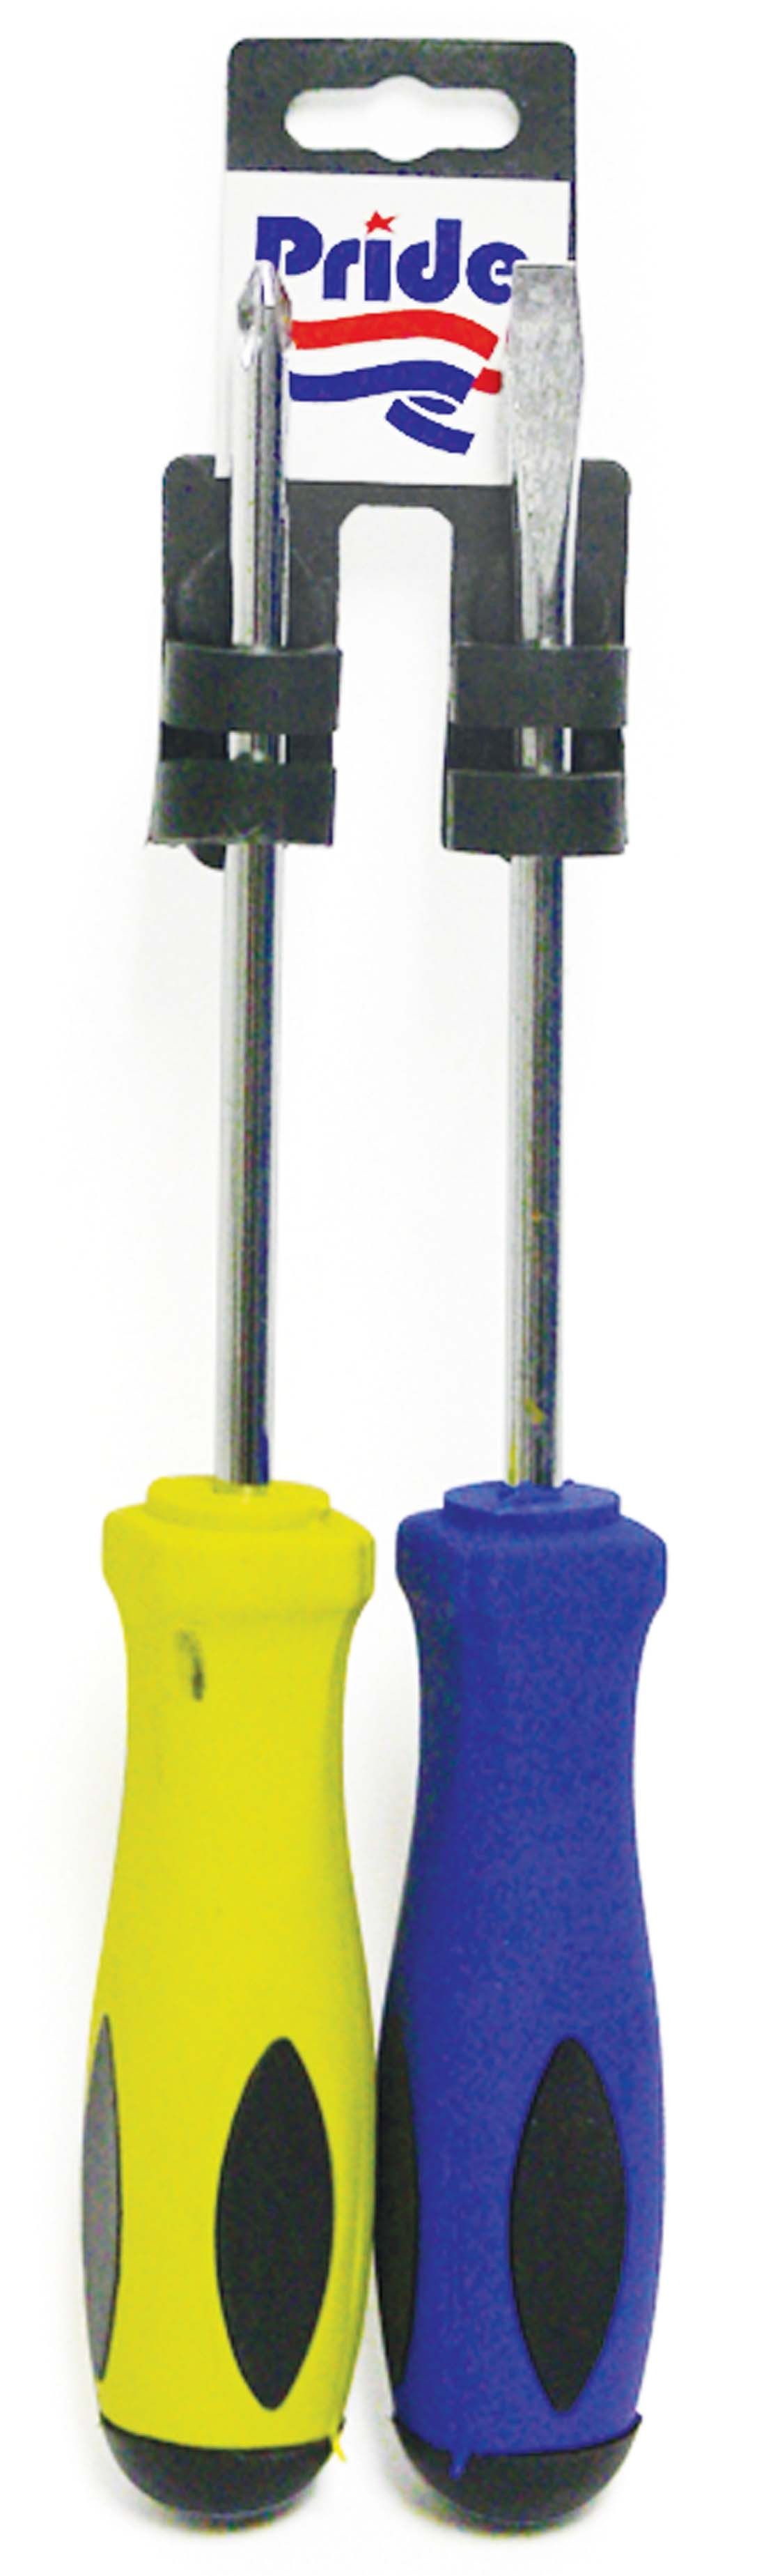 View SCREWDRIVER SET 2 PIECE 9 INCH - FLAT AND PHILLIPS HEAD